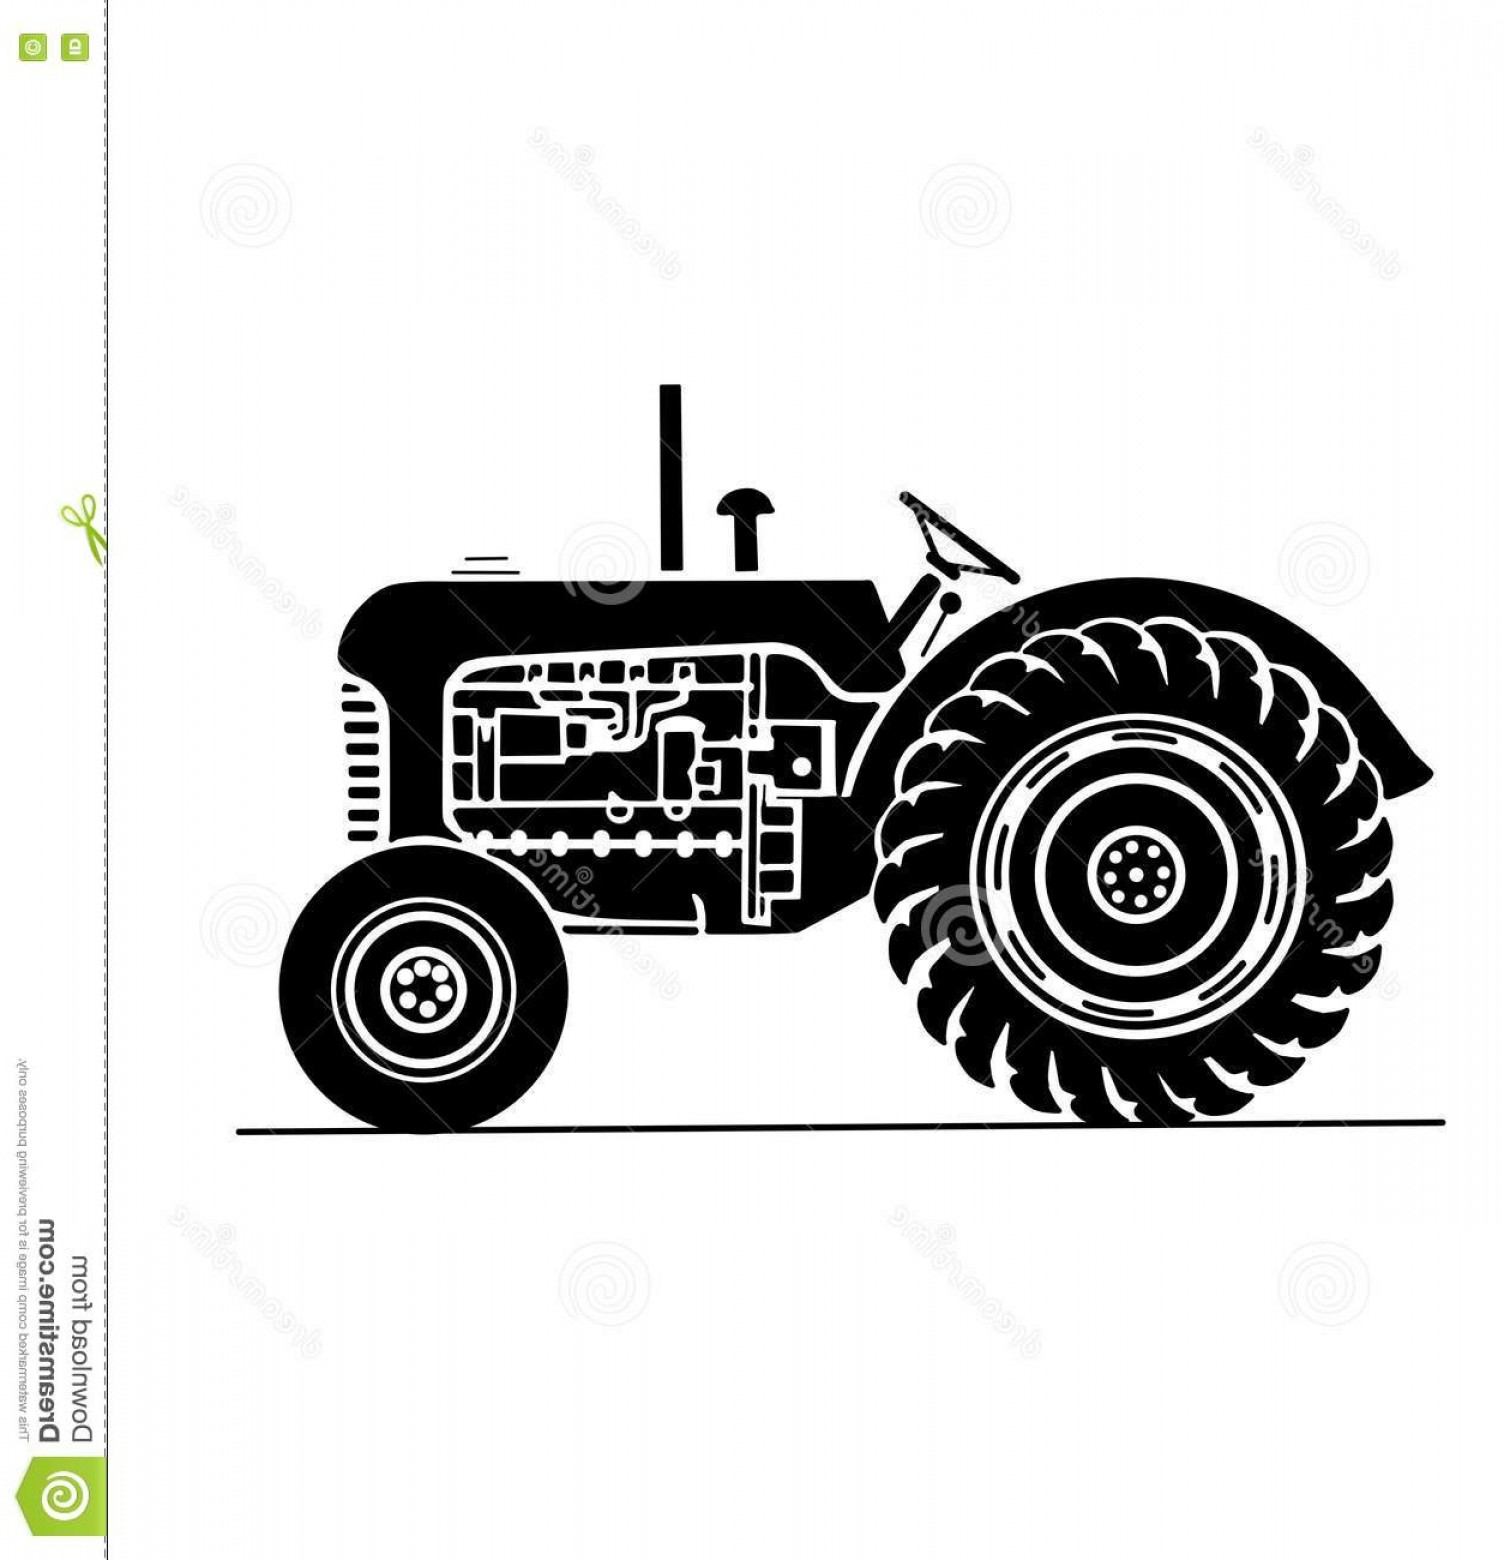 Vintage Tractor Vector Art: Stock Illustration Old Farm Tractor Side View Illustration Plane Image